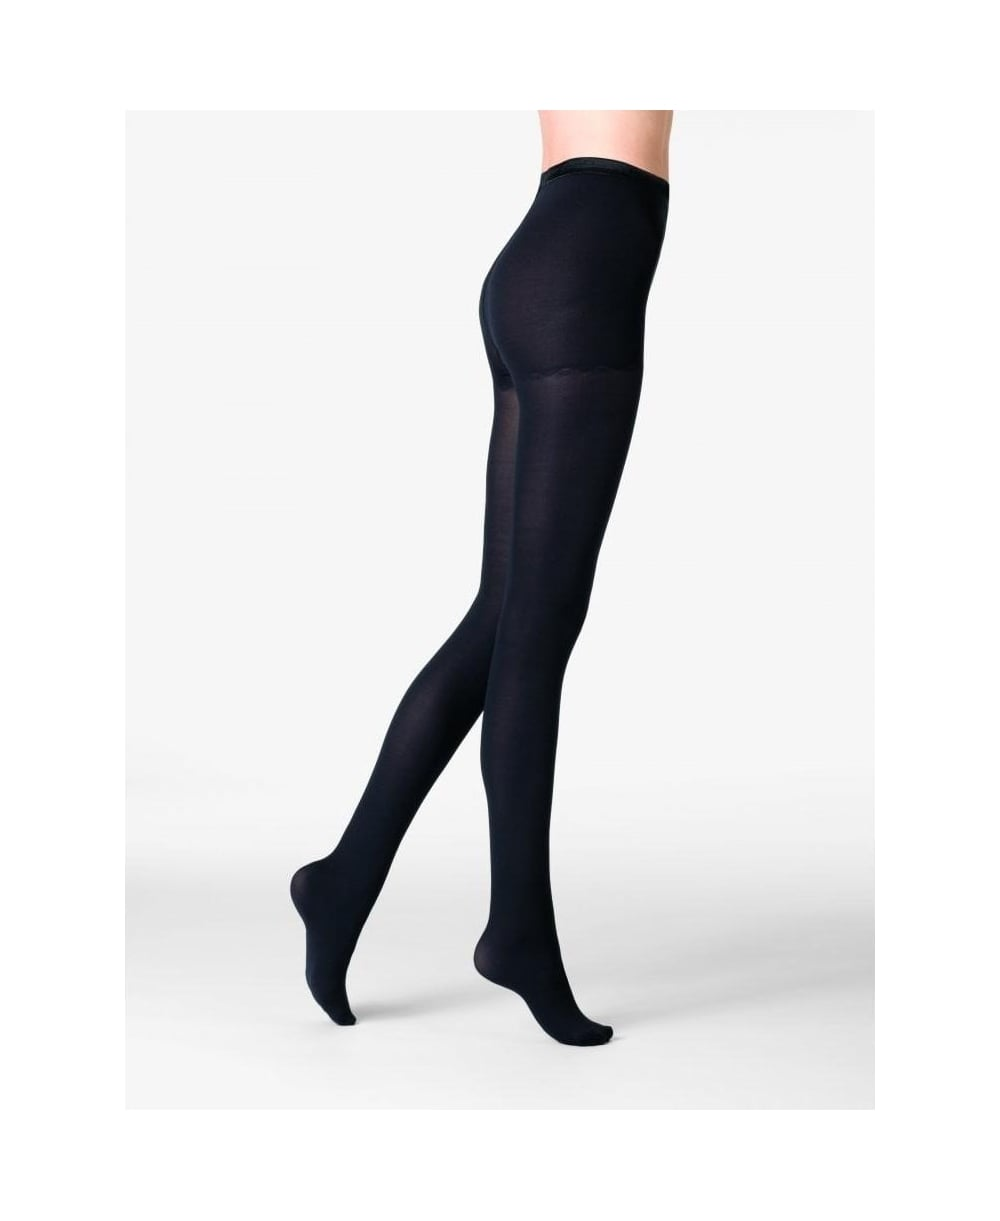 493cfd4f772 Fogal Velour Slimline 50 Denier Control Top Tights - Tights from luxury-legs.com  UK